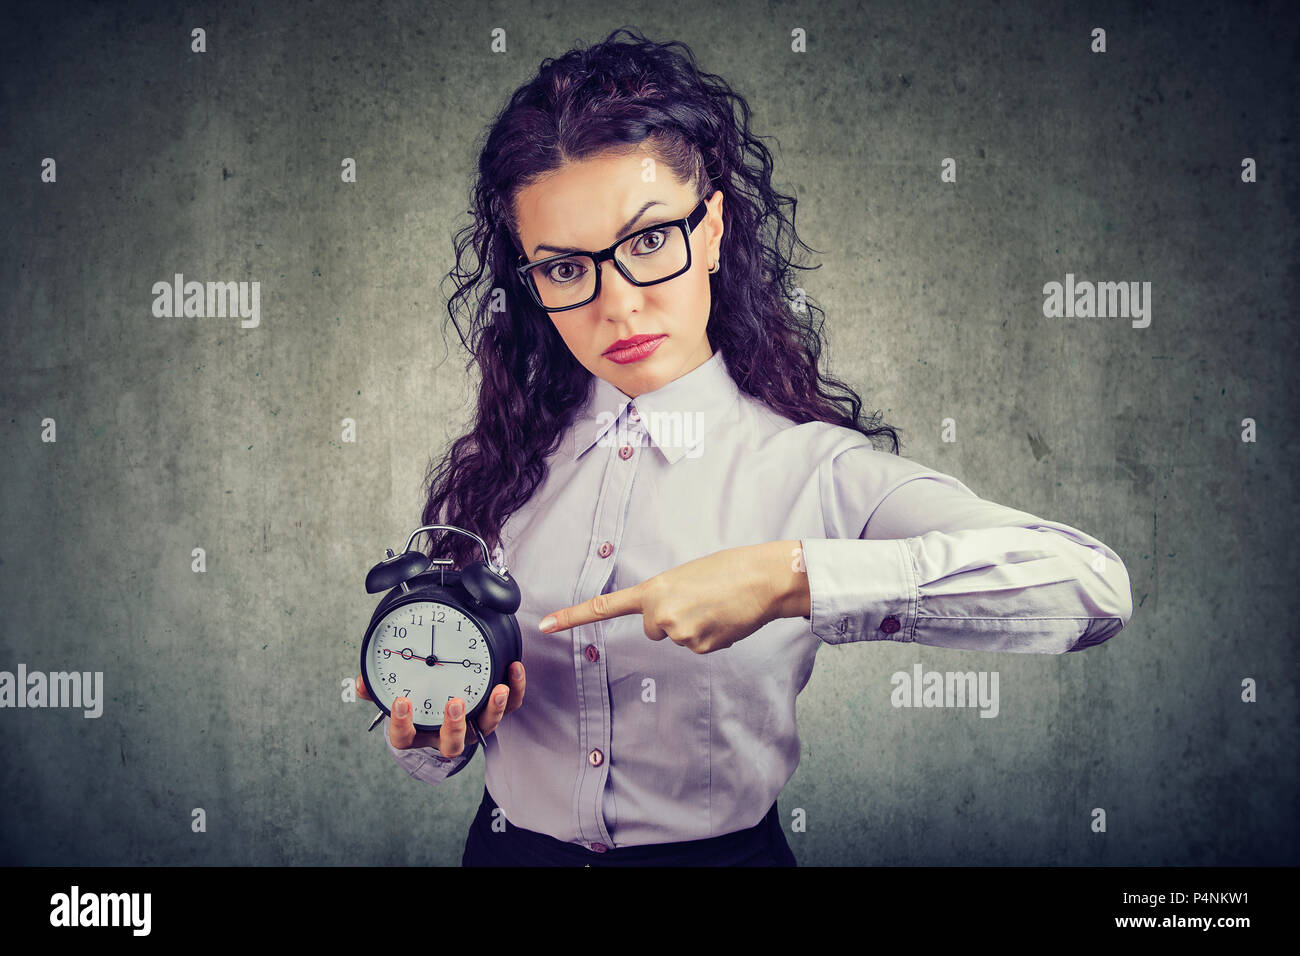 Business woman in glasses looking seriously at camera and pointing at alarm clock showing time on gray background - Stock Image